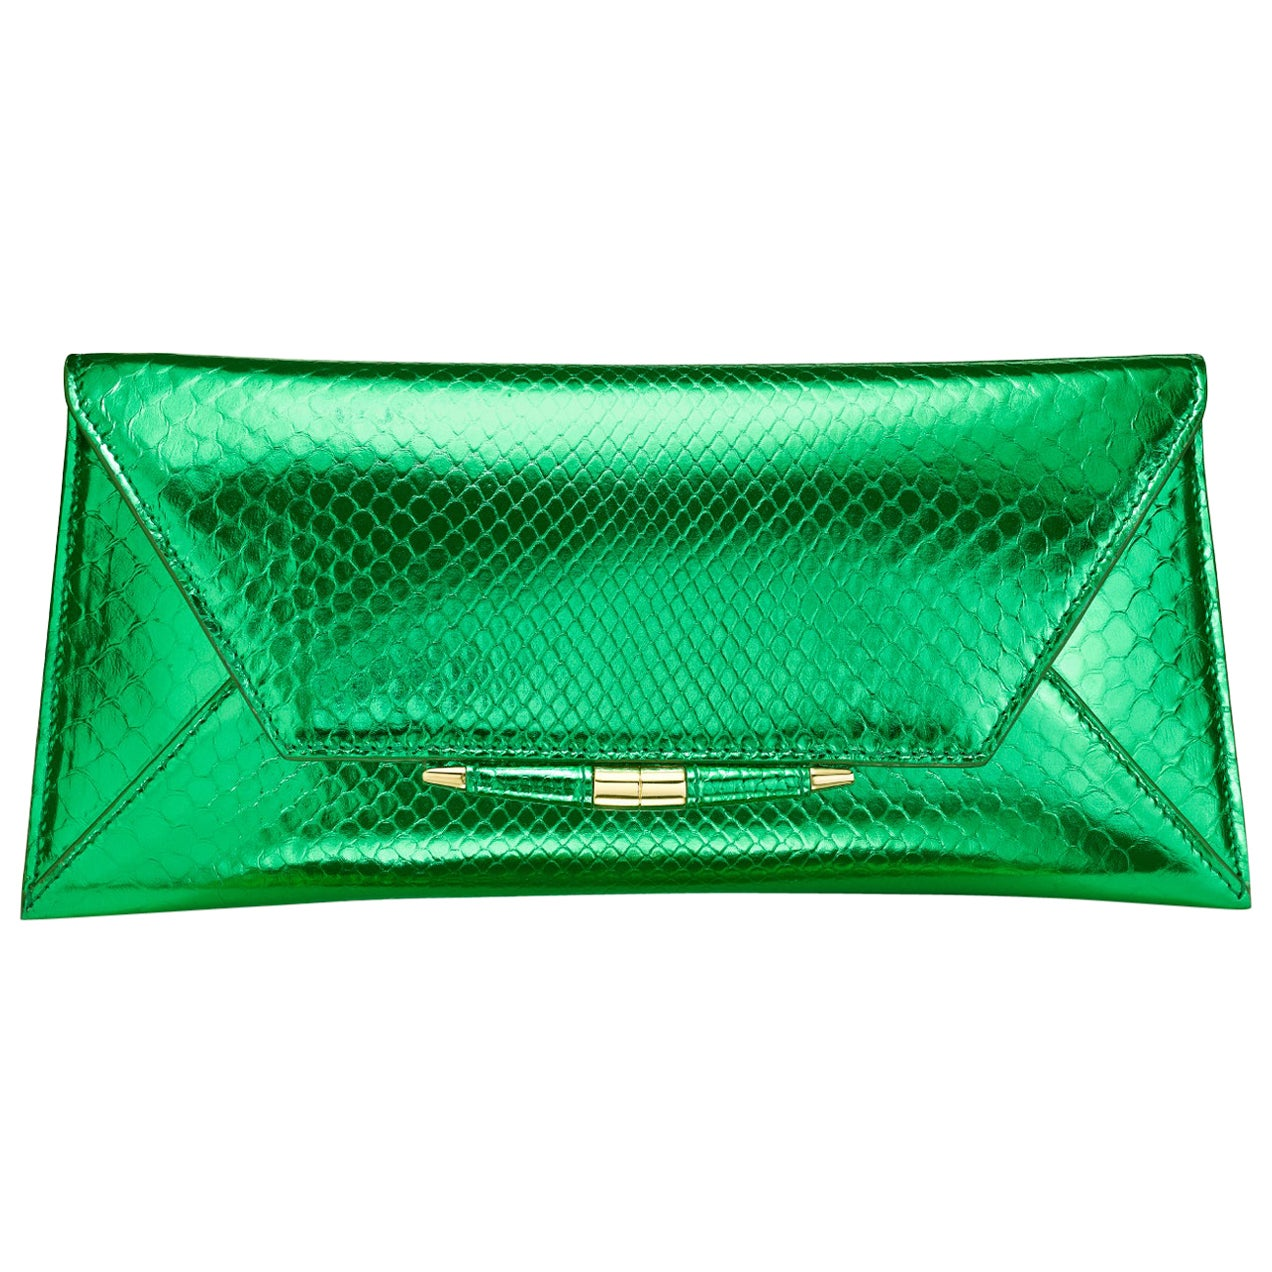 TYLER ELLIS Aimee Clutch Large Bright Green Python Gold Hardware